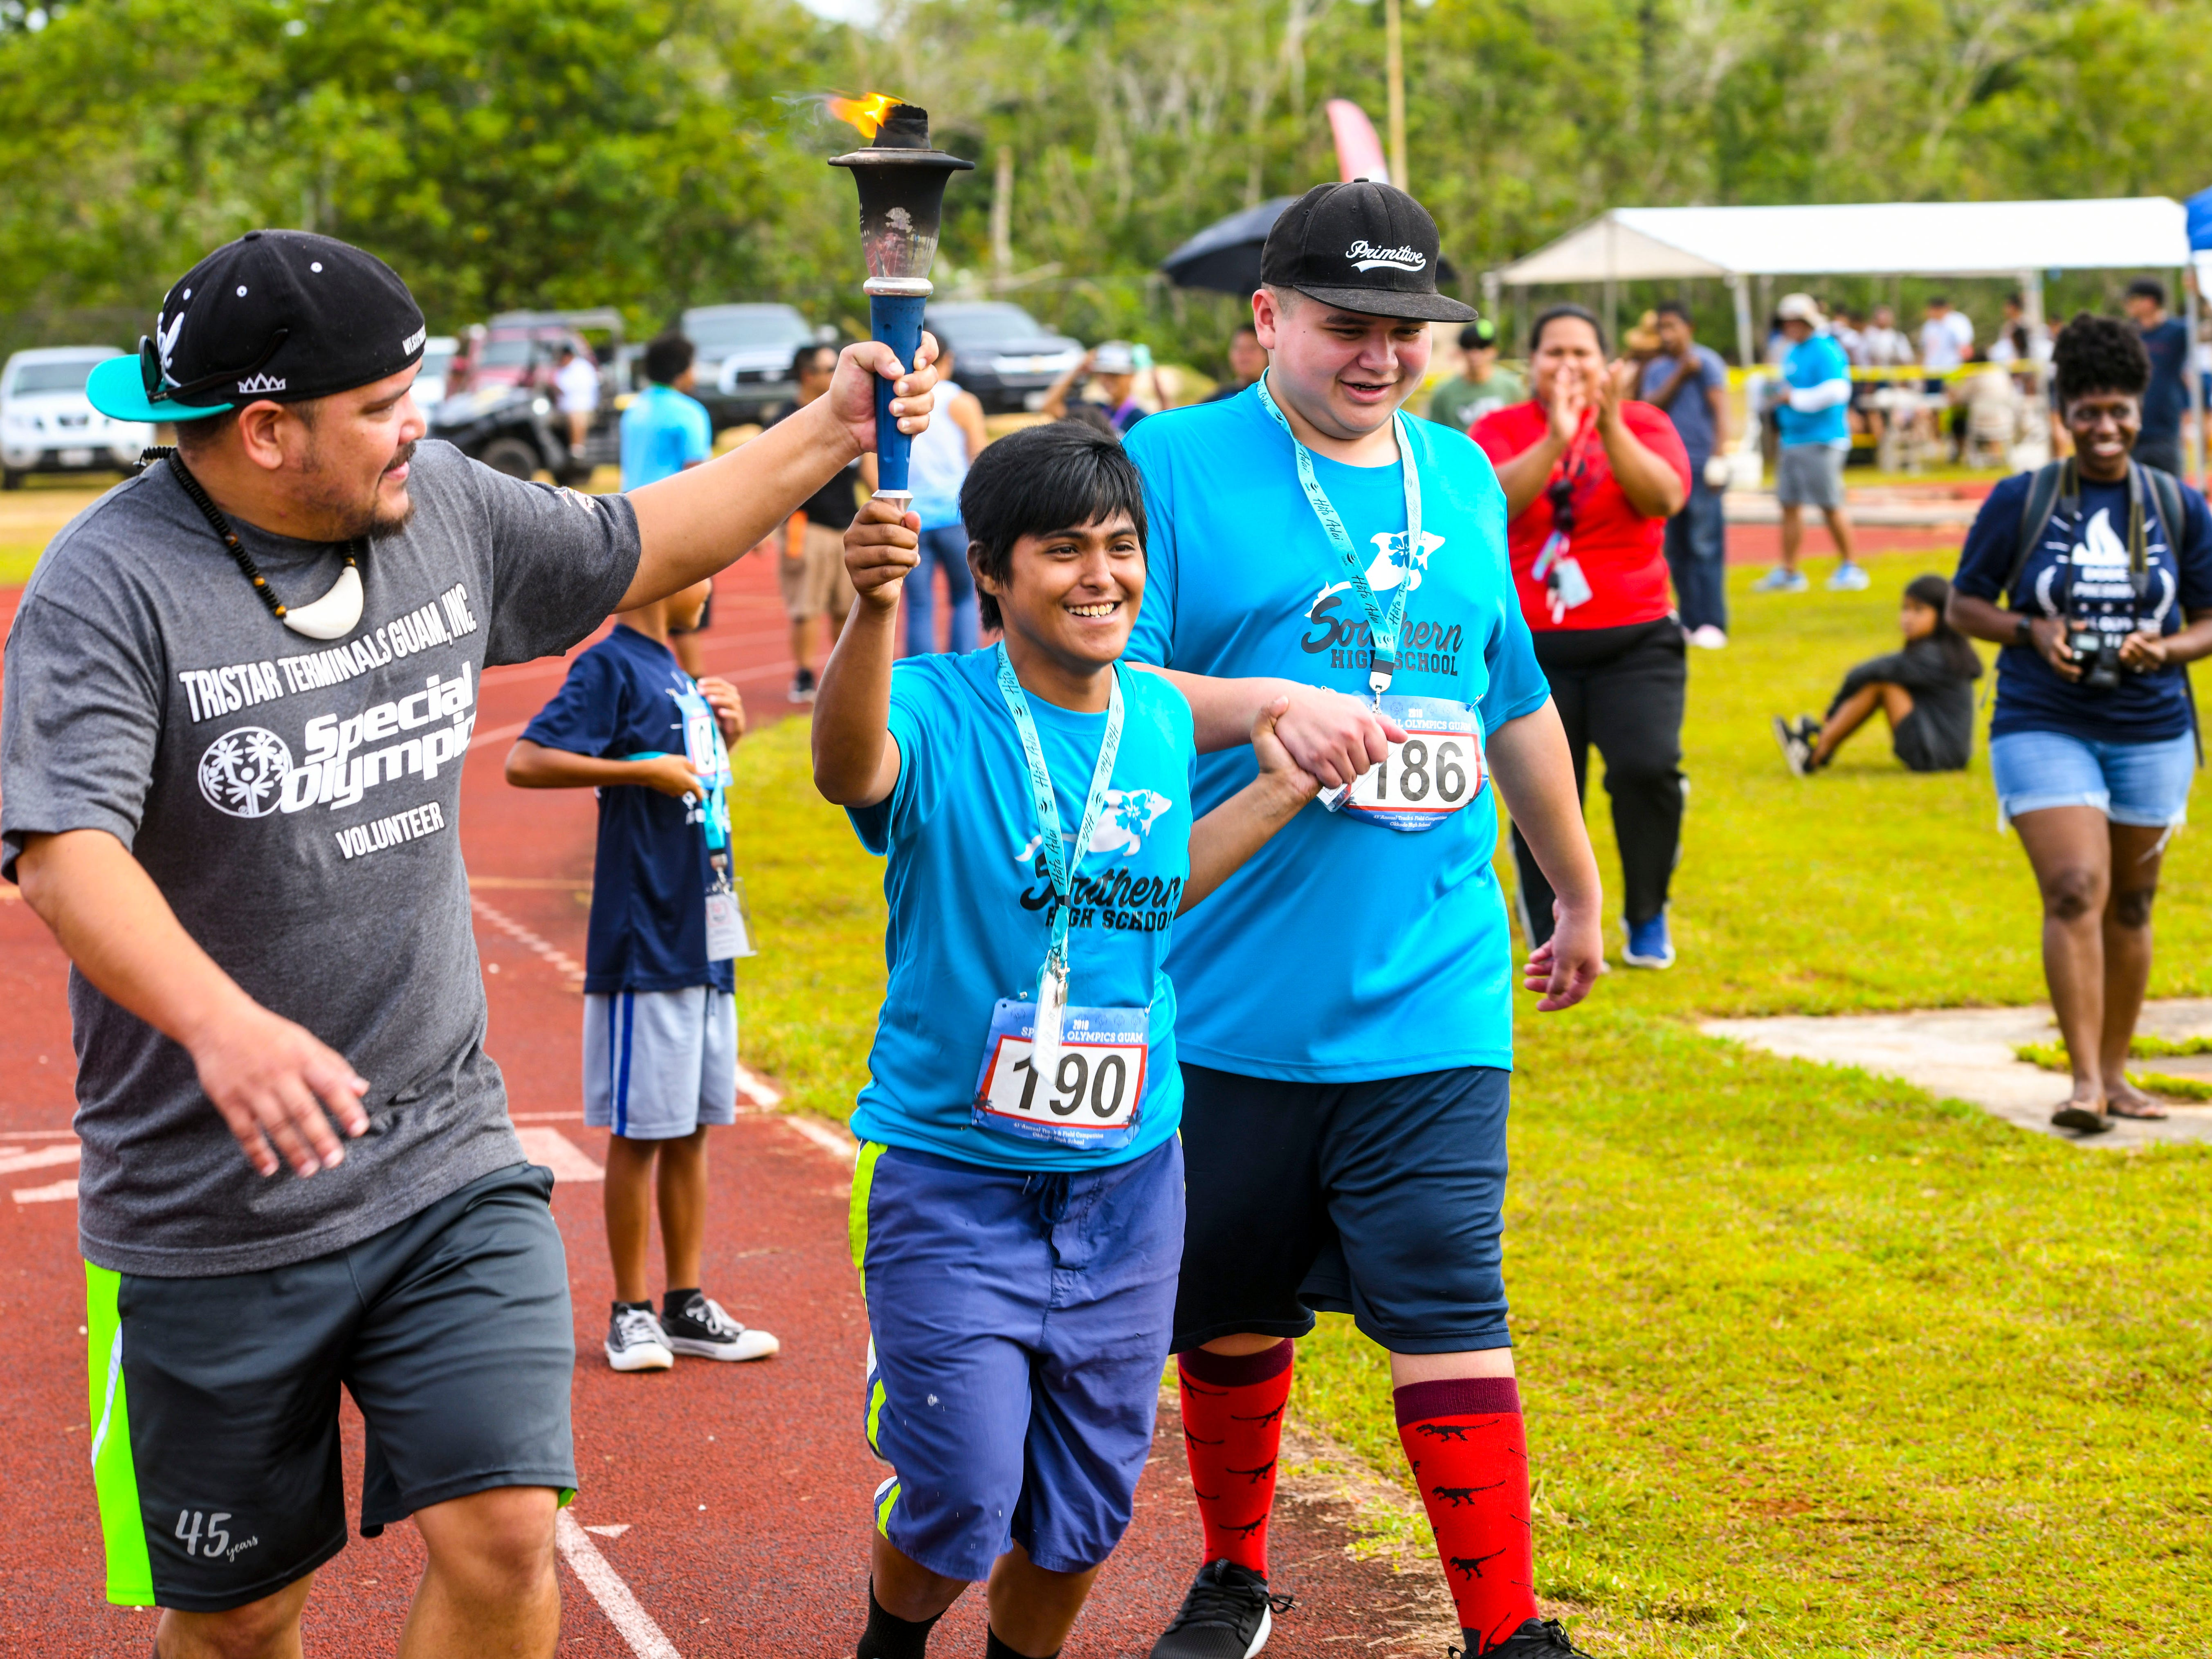 Special Olympian Courtney Fernandez participates in the torch relay during the 43rd Special Olympics Guam Track & Field competition at Okkodo High School in Dededo on Saturday, March 16, 2019.